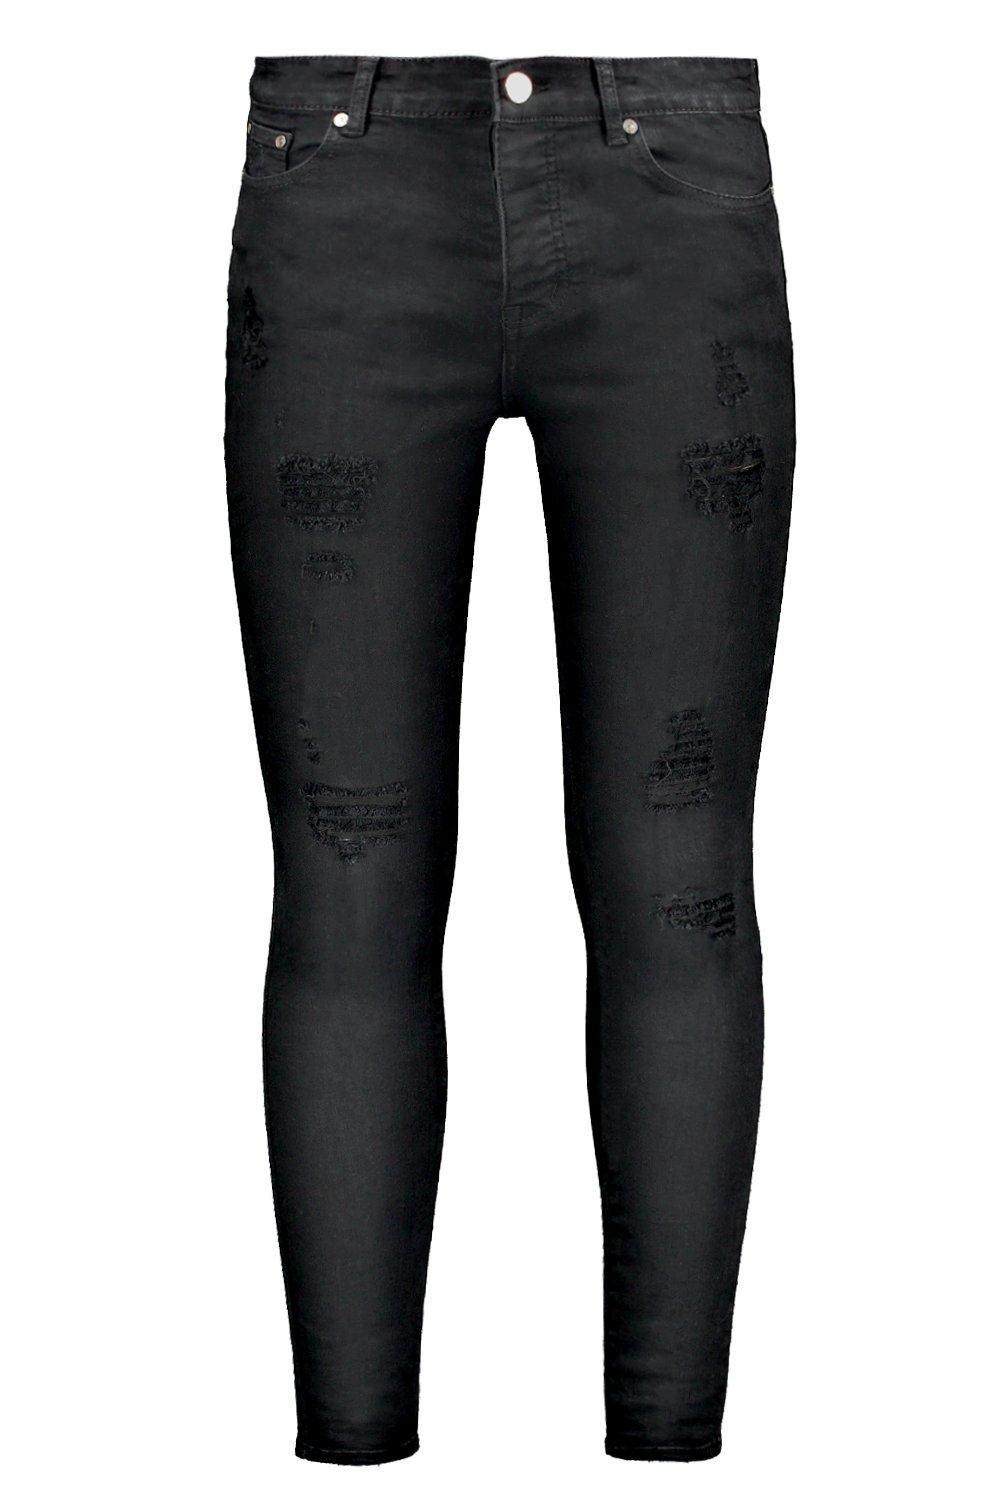 boohooMAN black Spray On Skinny Jeans With Distressing